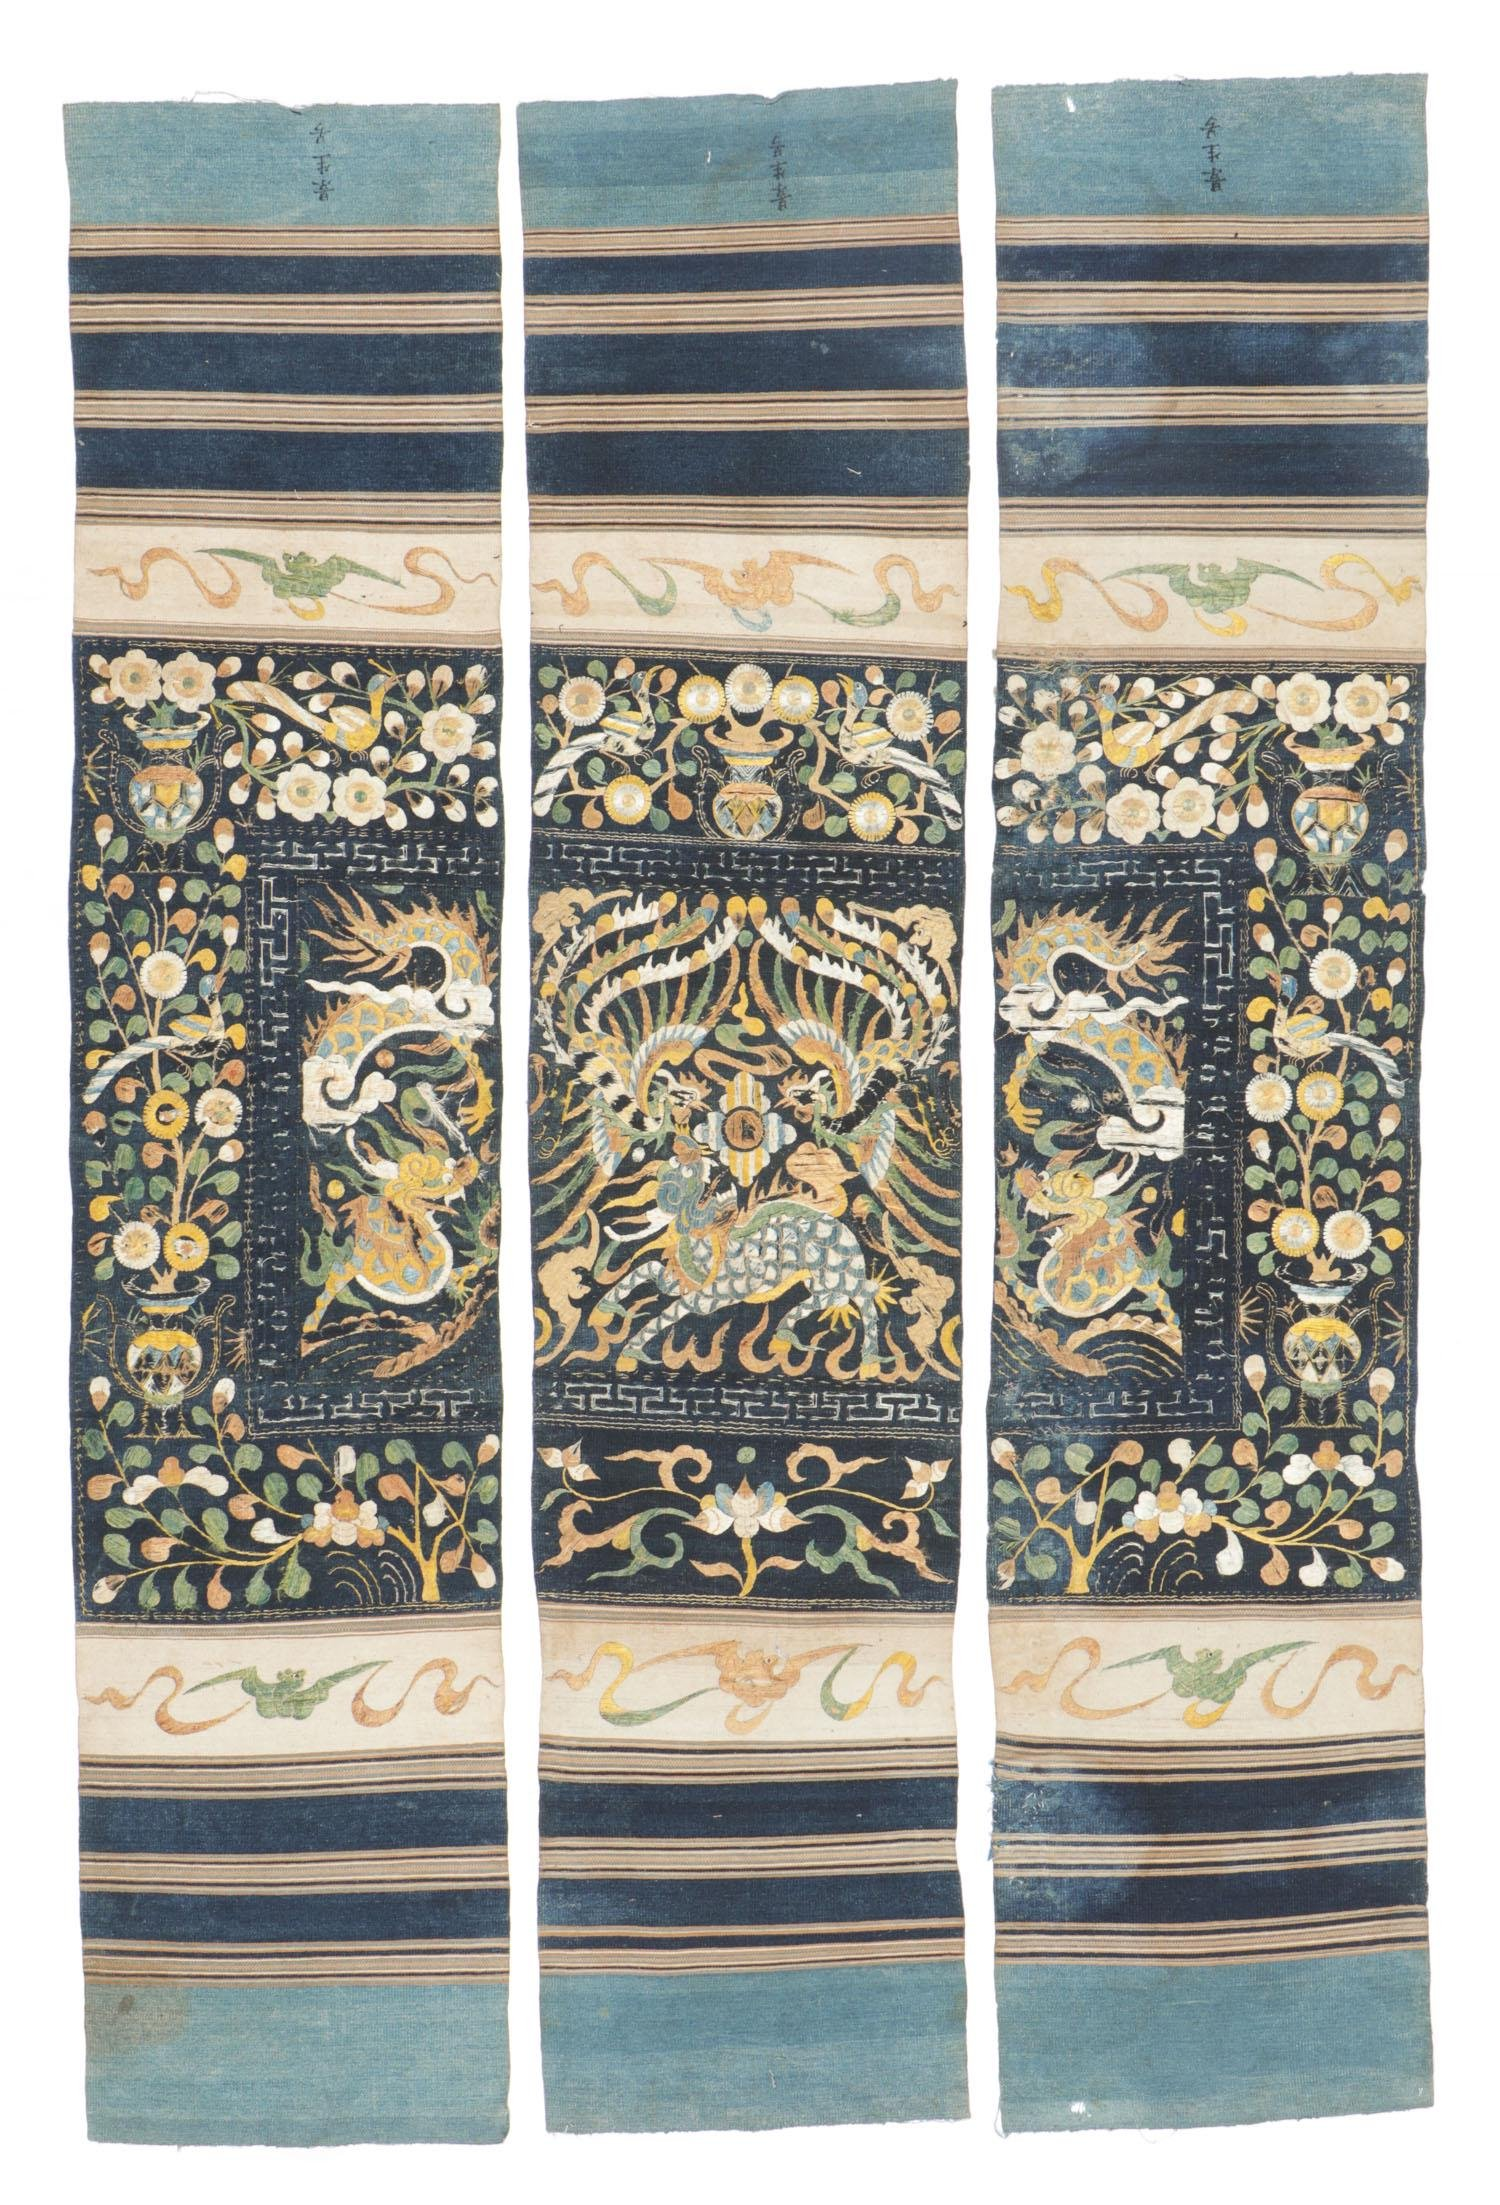 Antique Silk Embroidered Dragon Tapestry, Li People